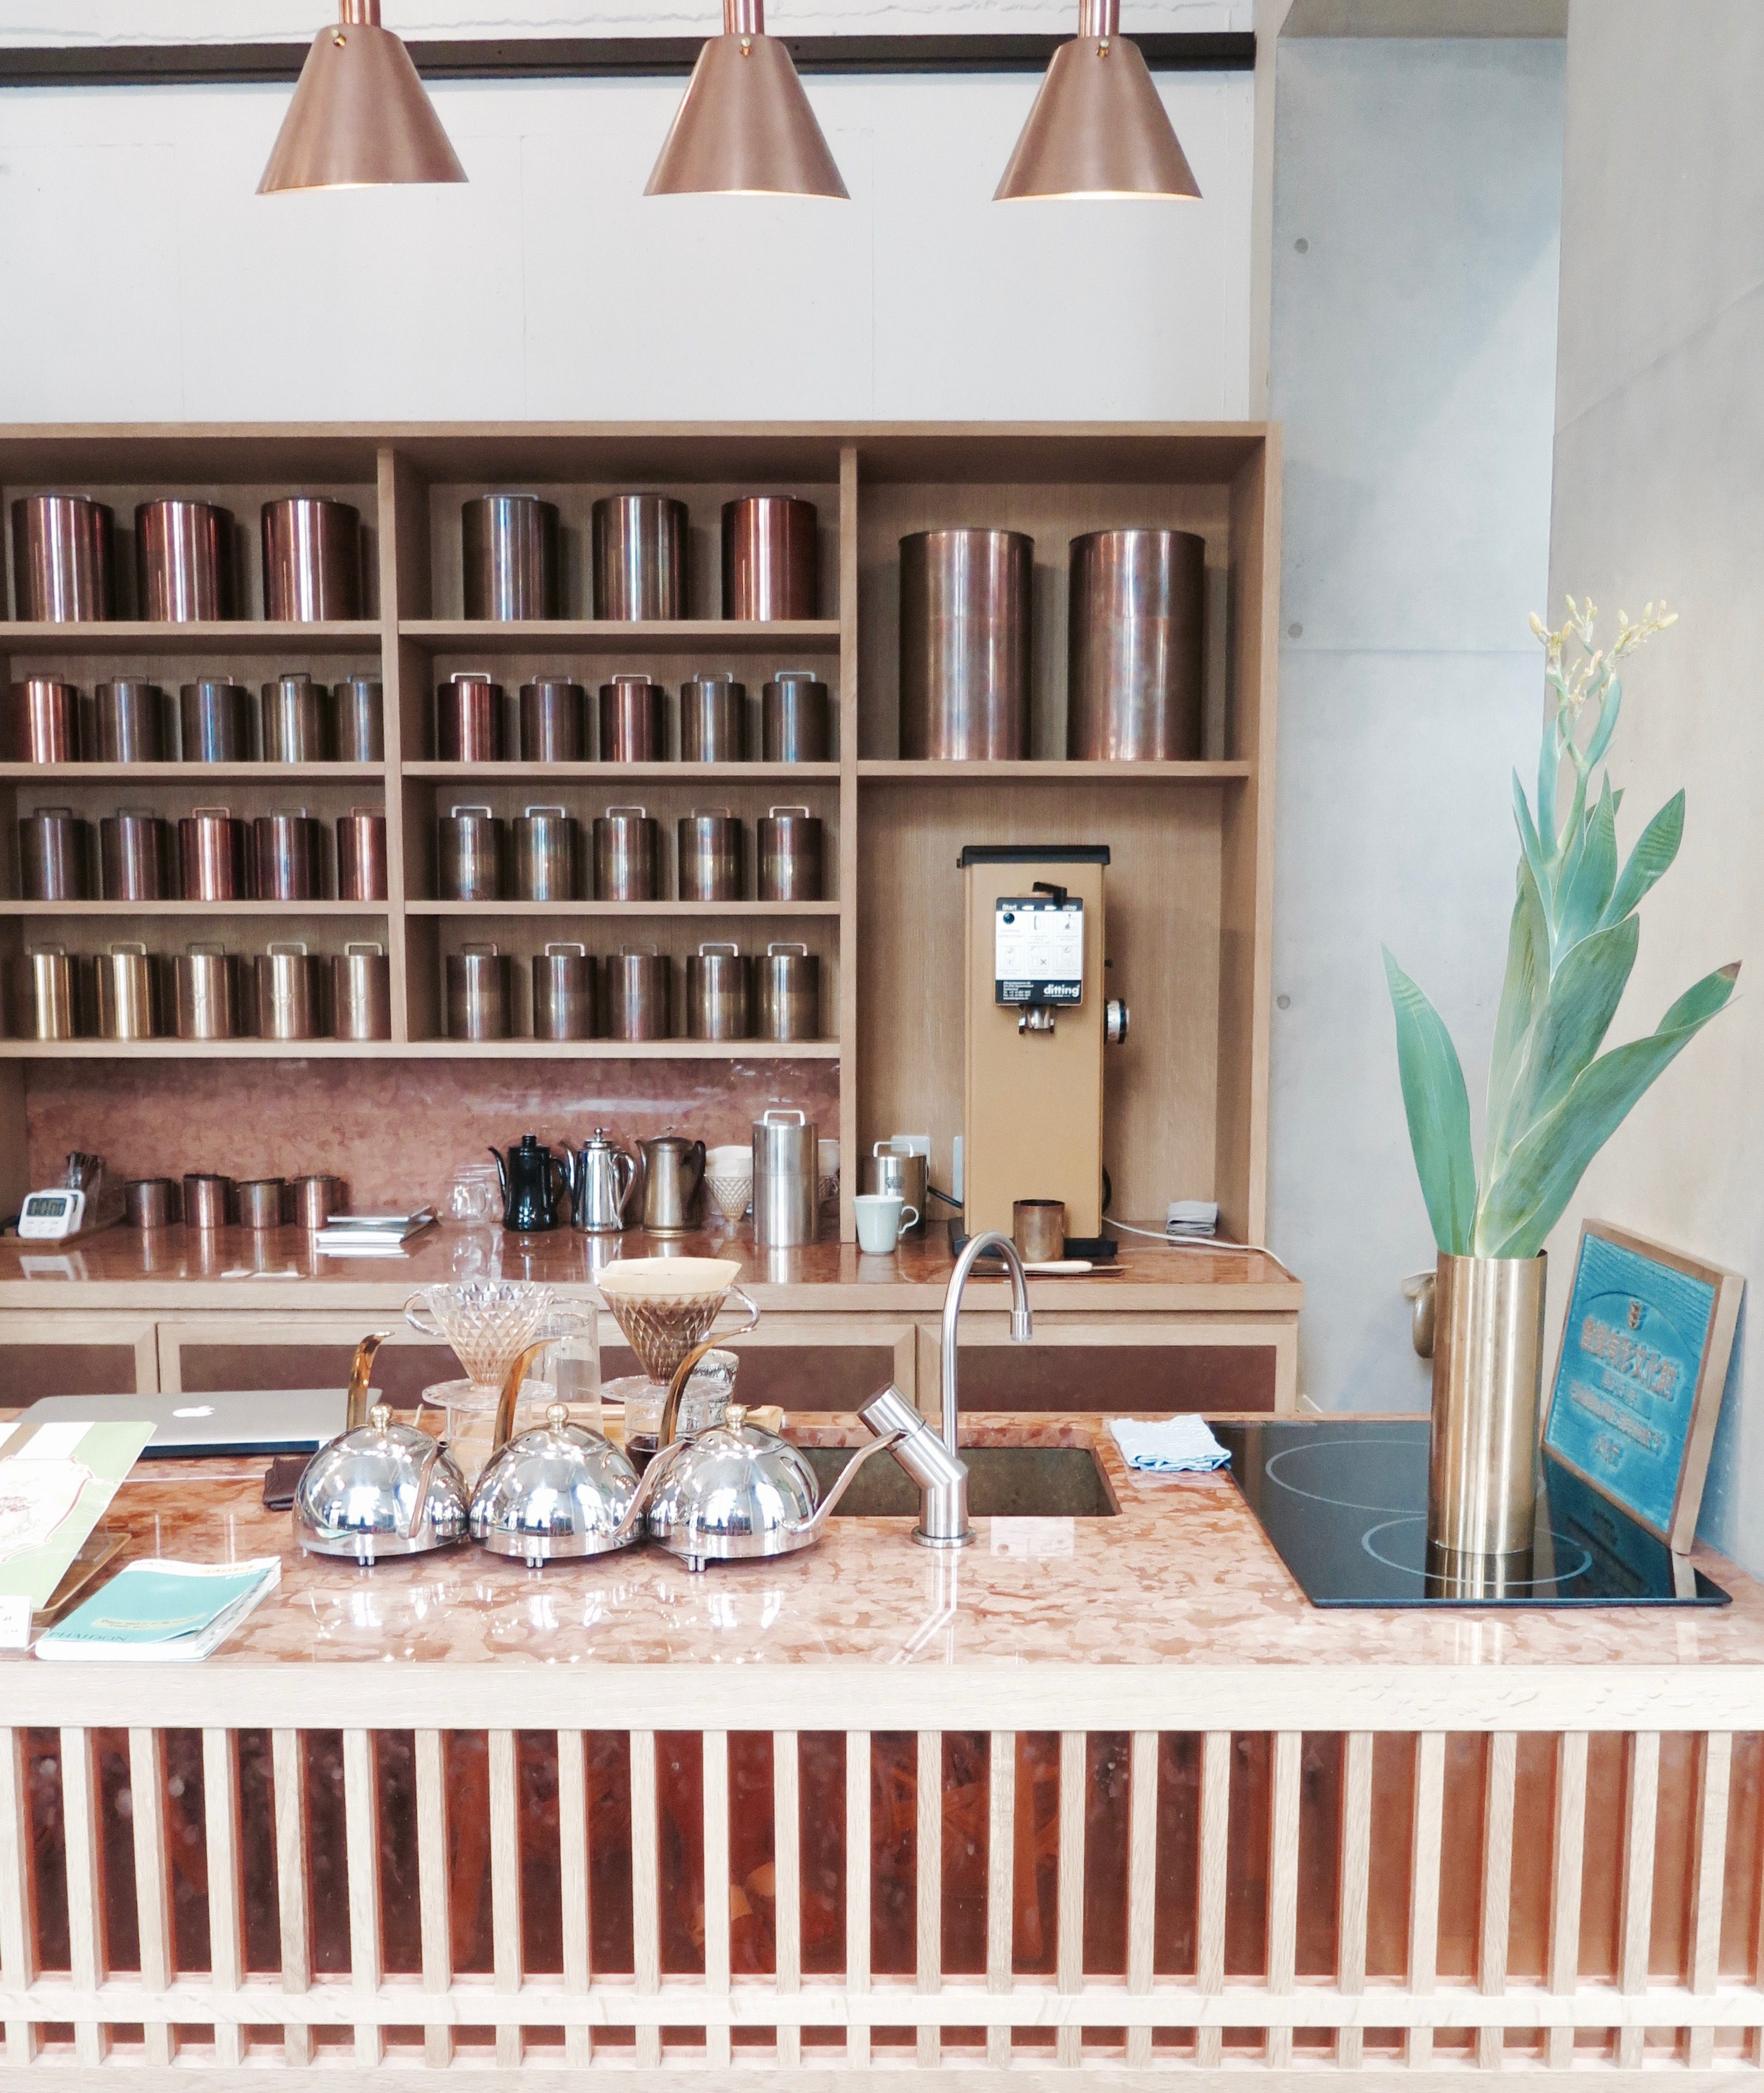 夏 in Kyoto: Hotel Anteroom and Cafe Hunting